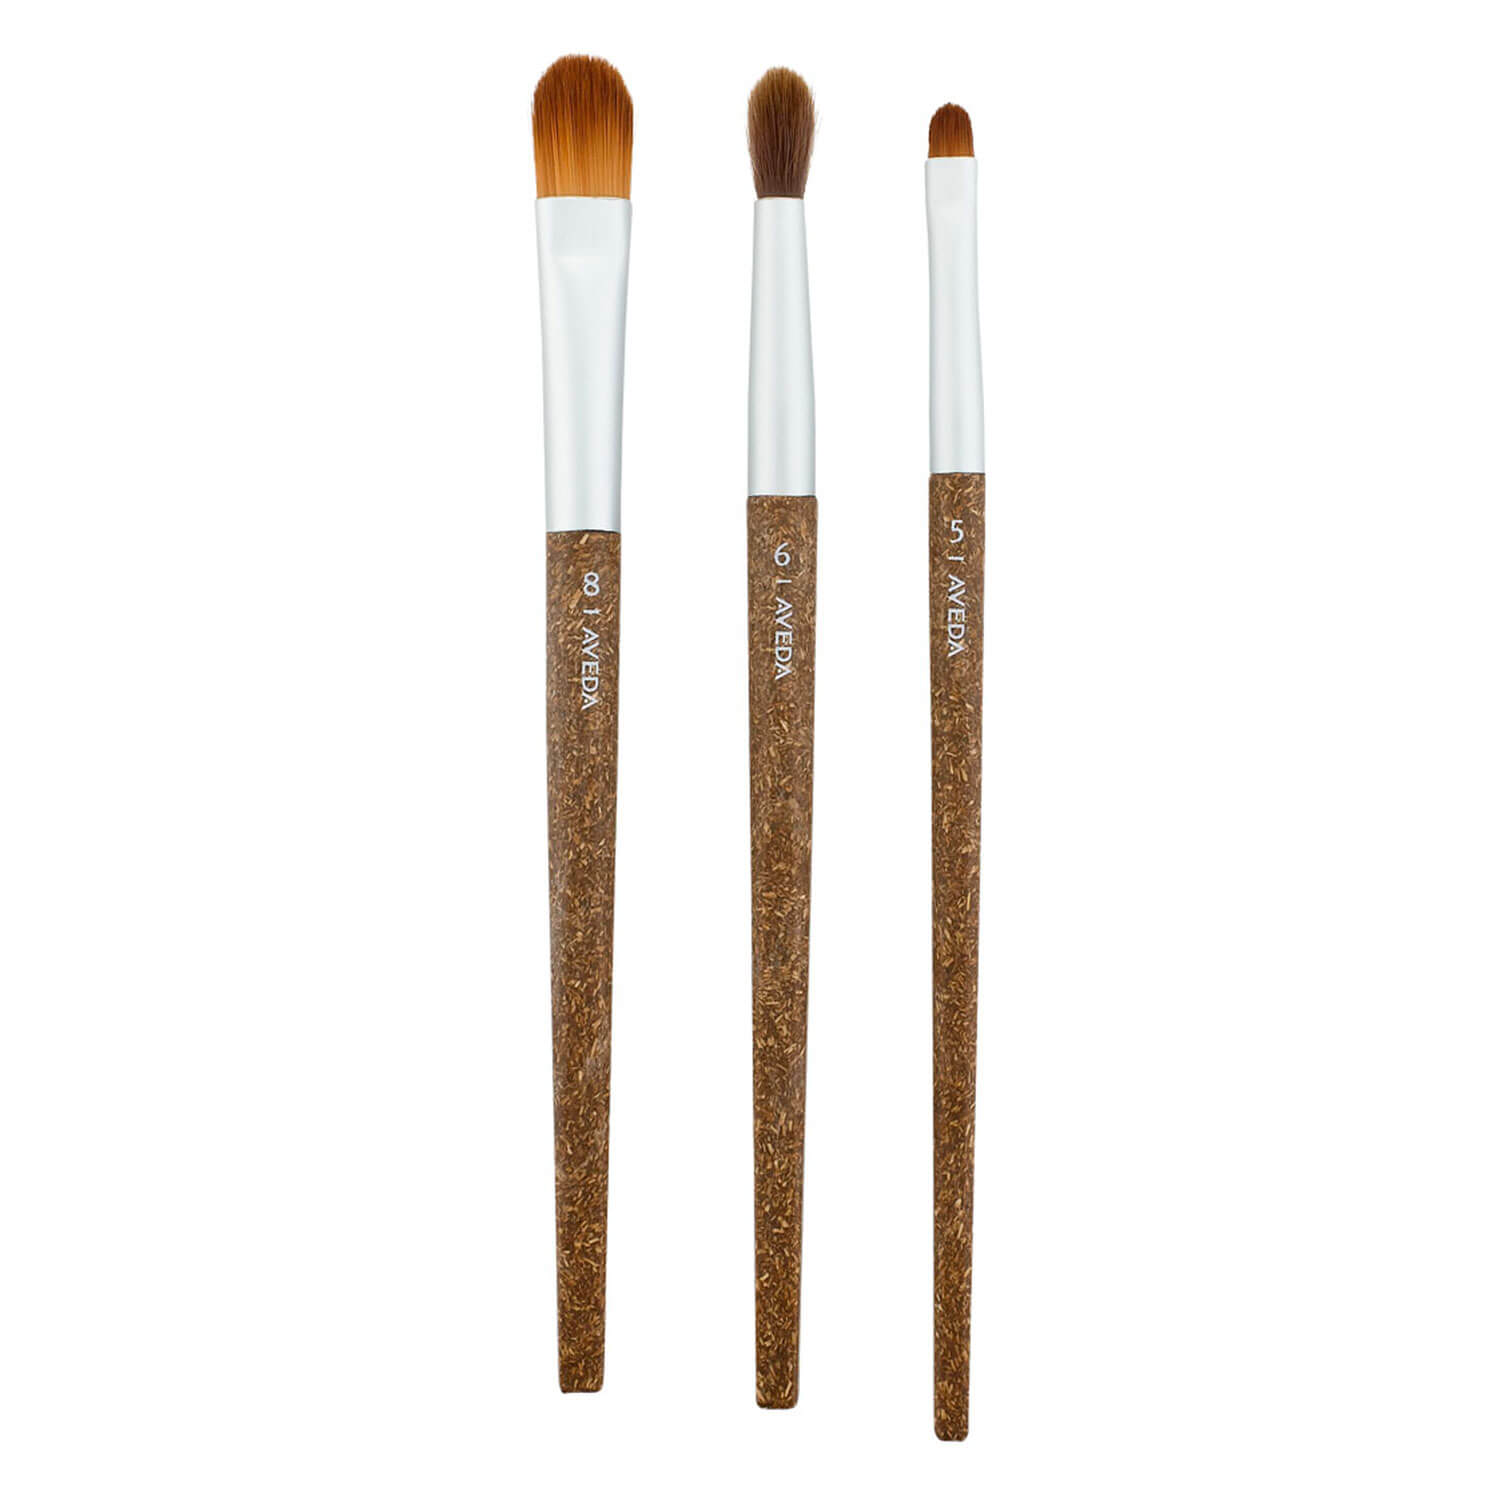 flax sticks - special effects brush set